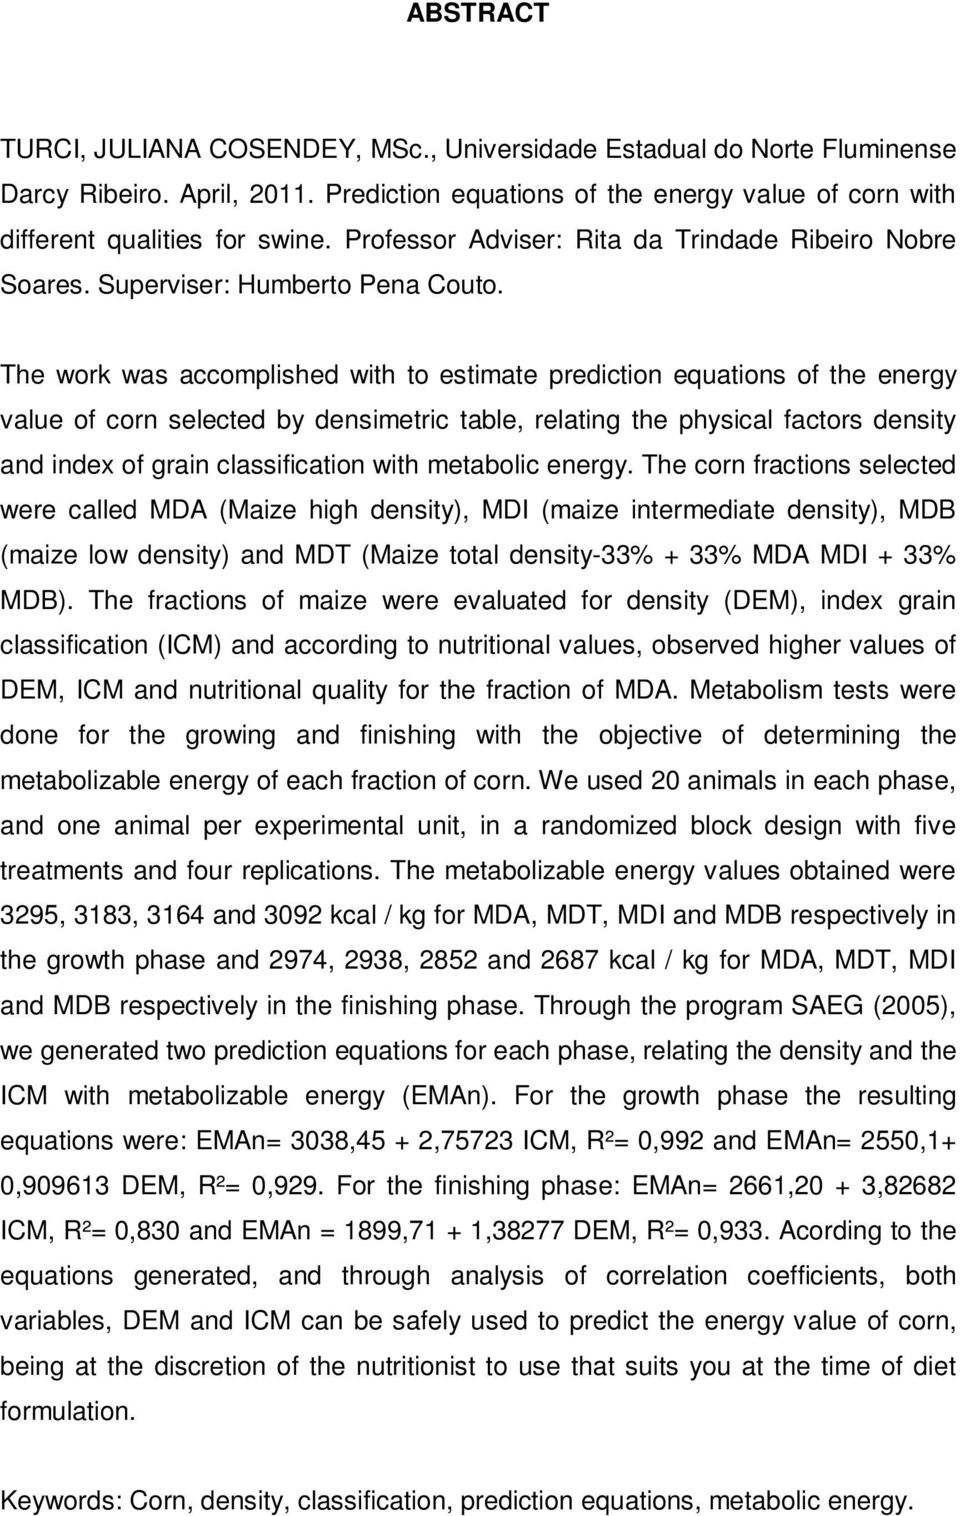 The work was accomplished with to estimate prediction equations of the energy value of corn selected by densimetric table, relating the physical factors density and index of grain classification with